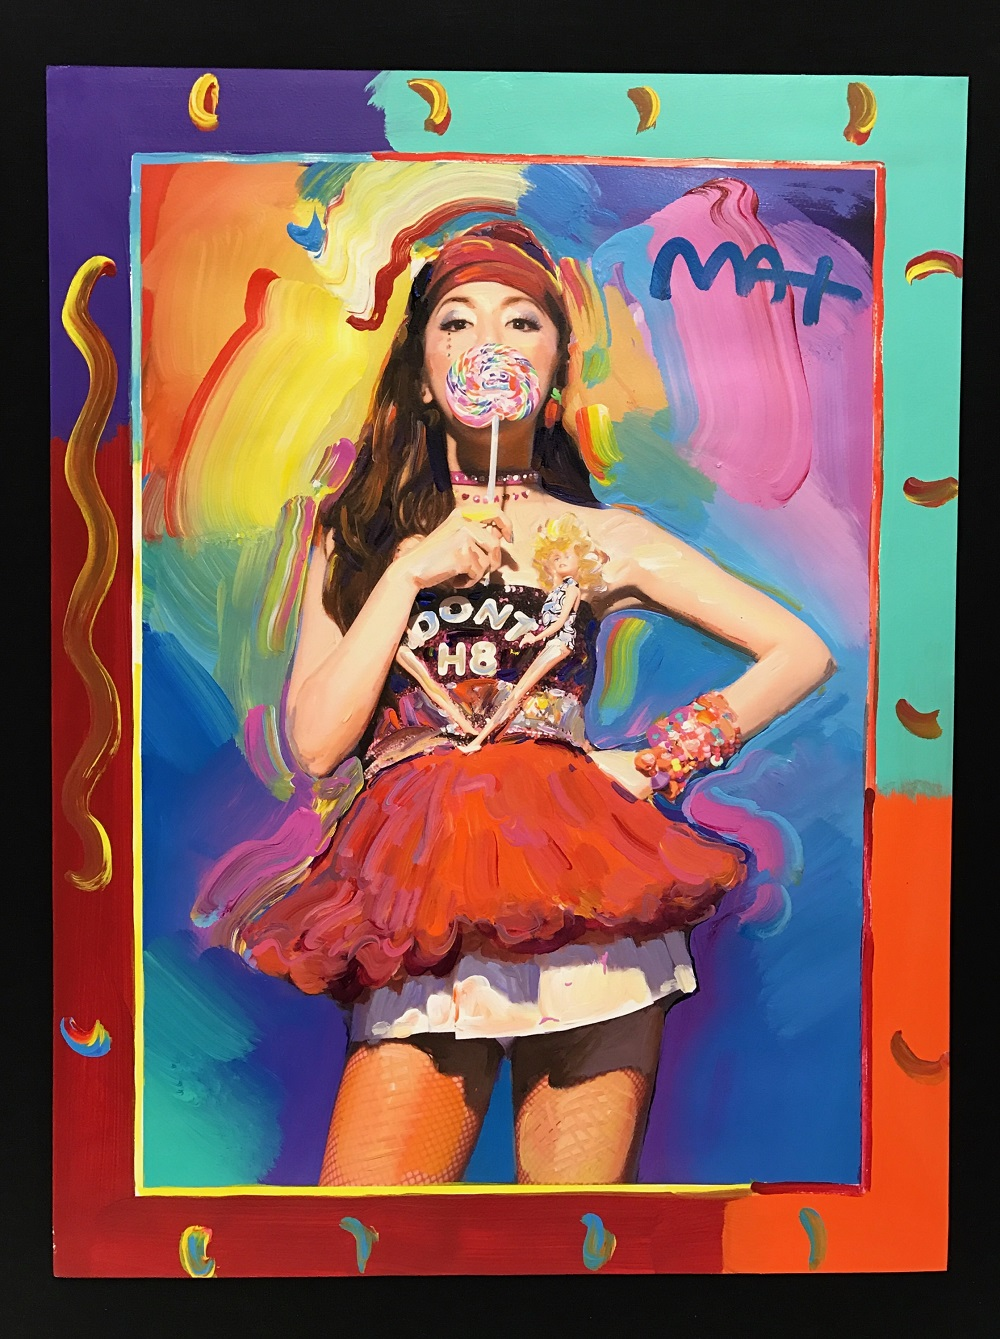 Peter Max's portrait of G.E.M. that will be auctioned off for charity aboard Royal Caribbean International's Quantum of the Seas cruise ship. Park West Gallery, Peter Max cruise ship art